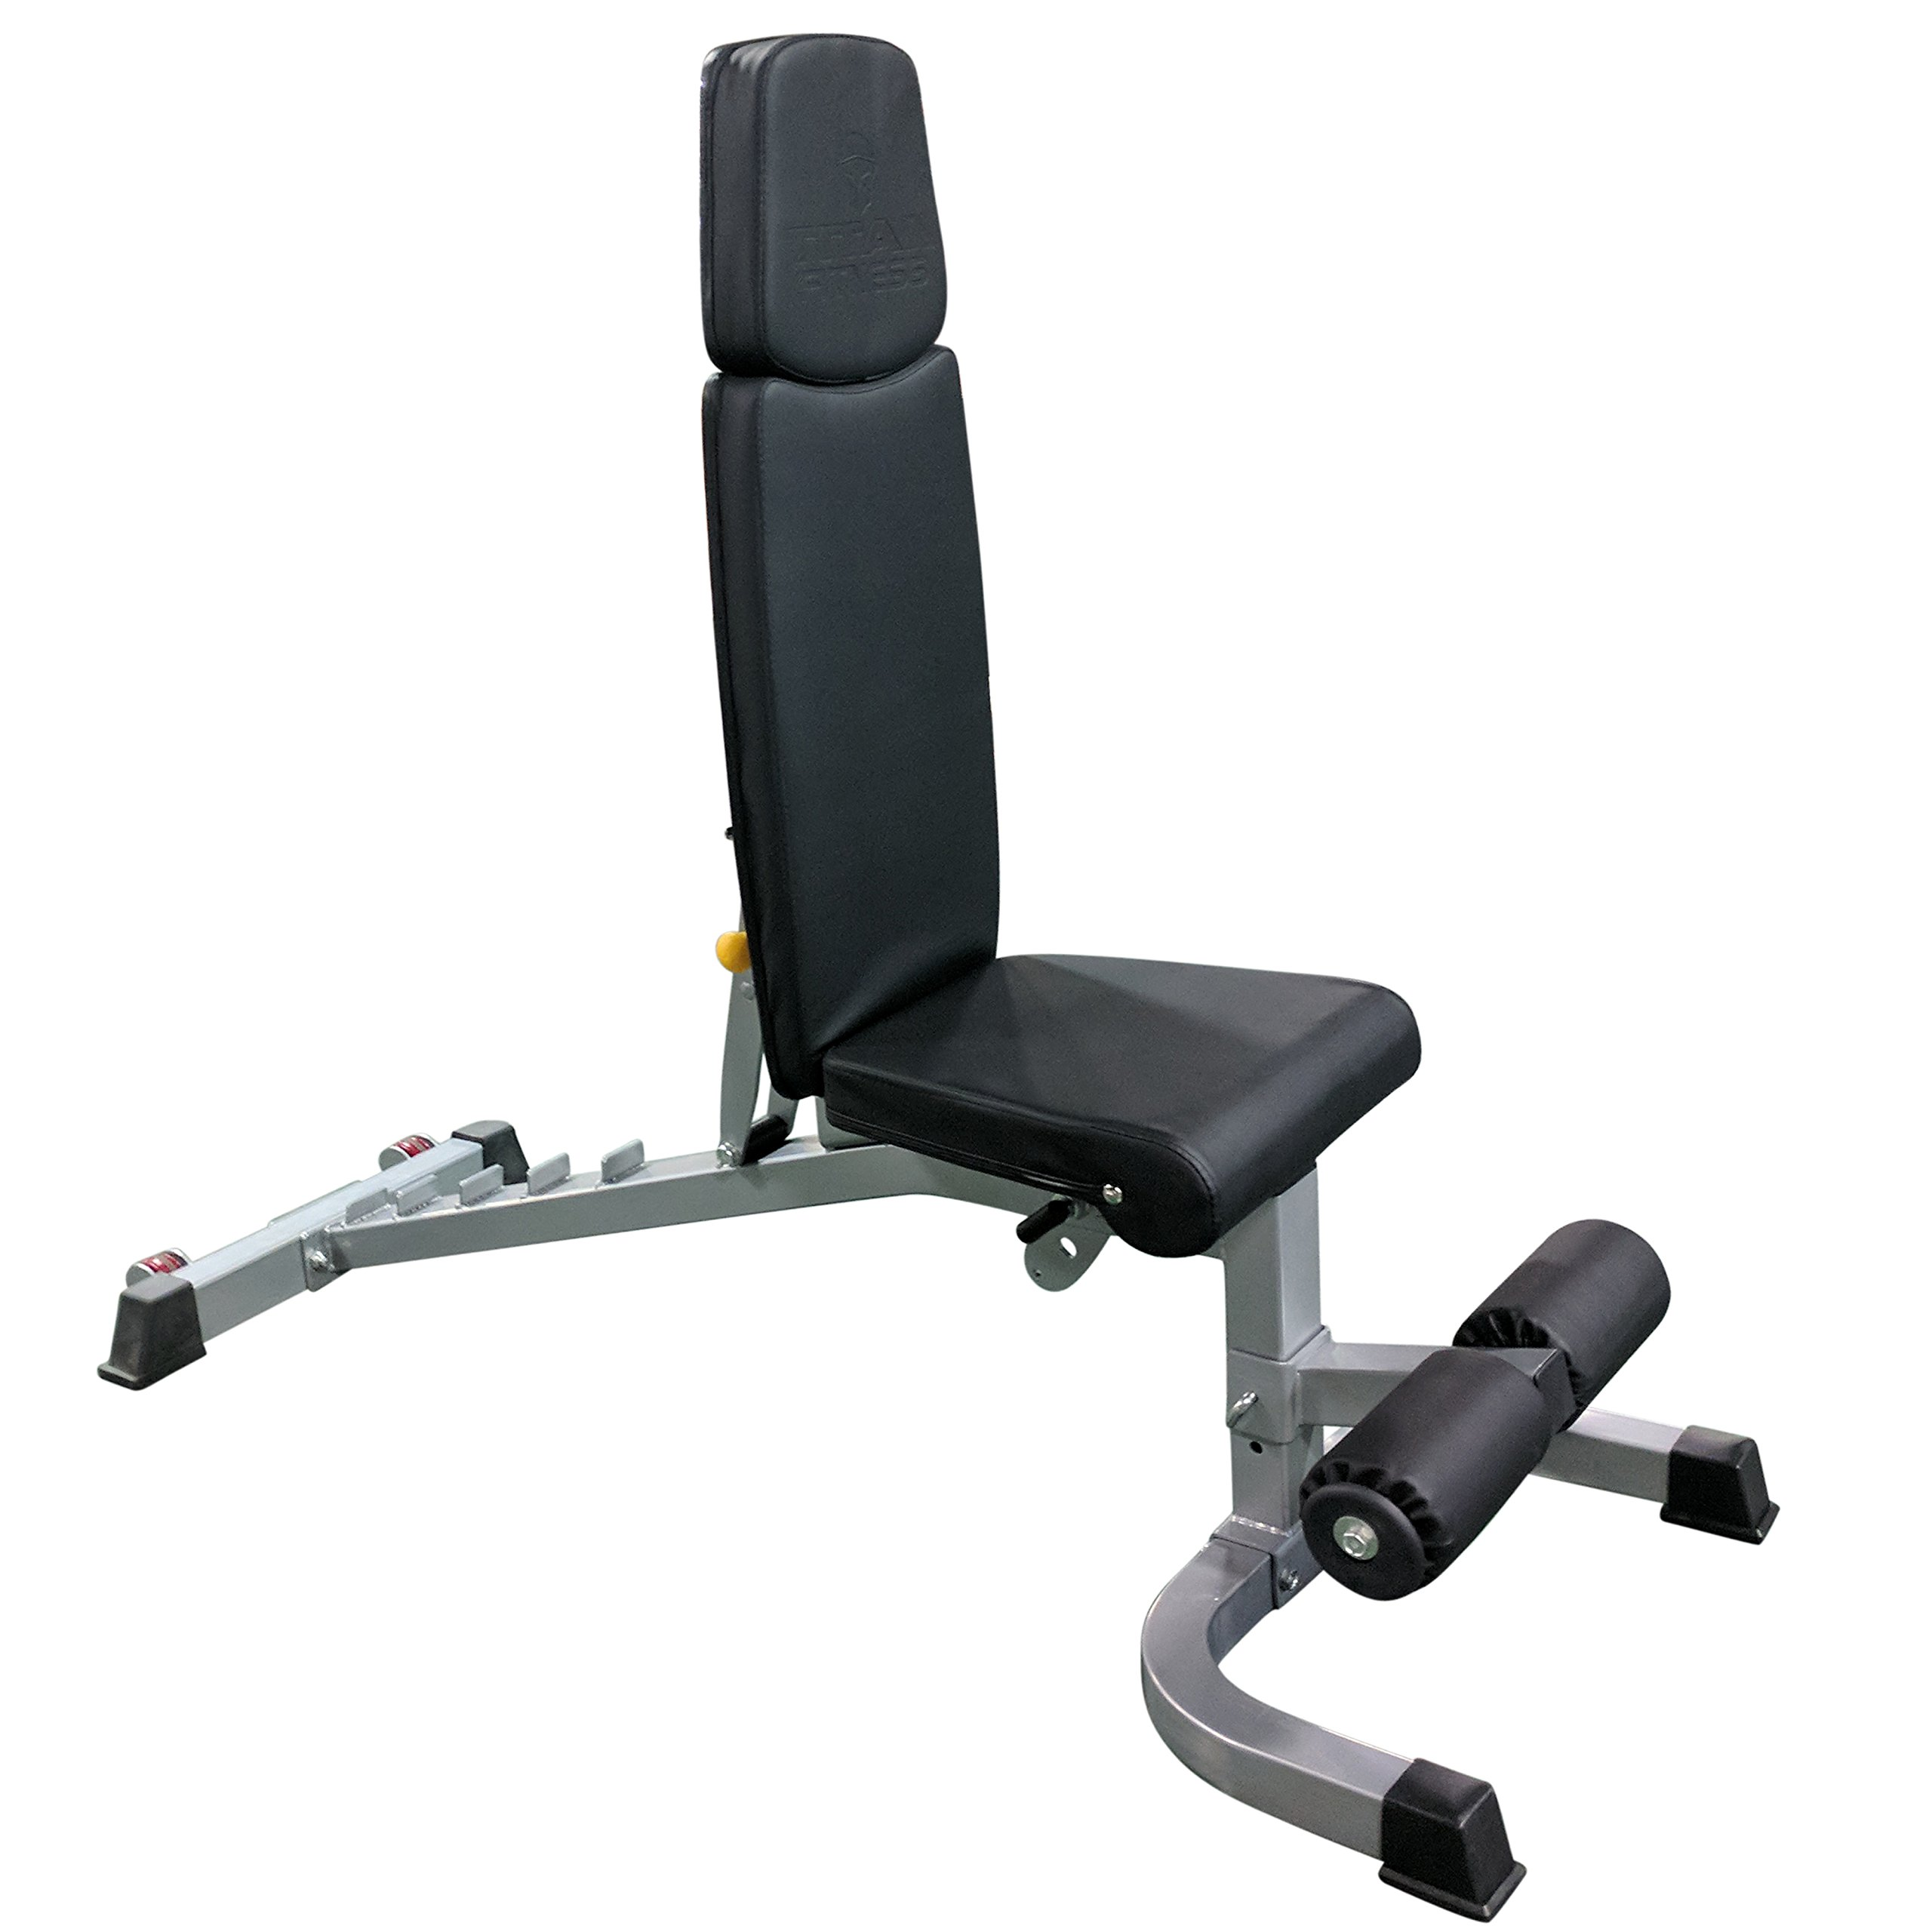 Titan Adjustable Weight Bench - 1000 LB Capacity - Incline Decline Flat by Titan Fitness